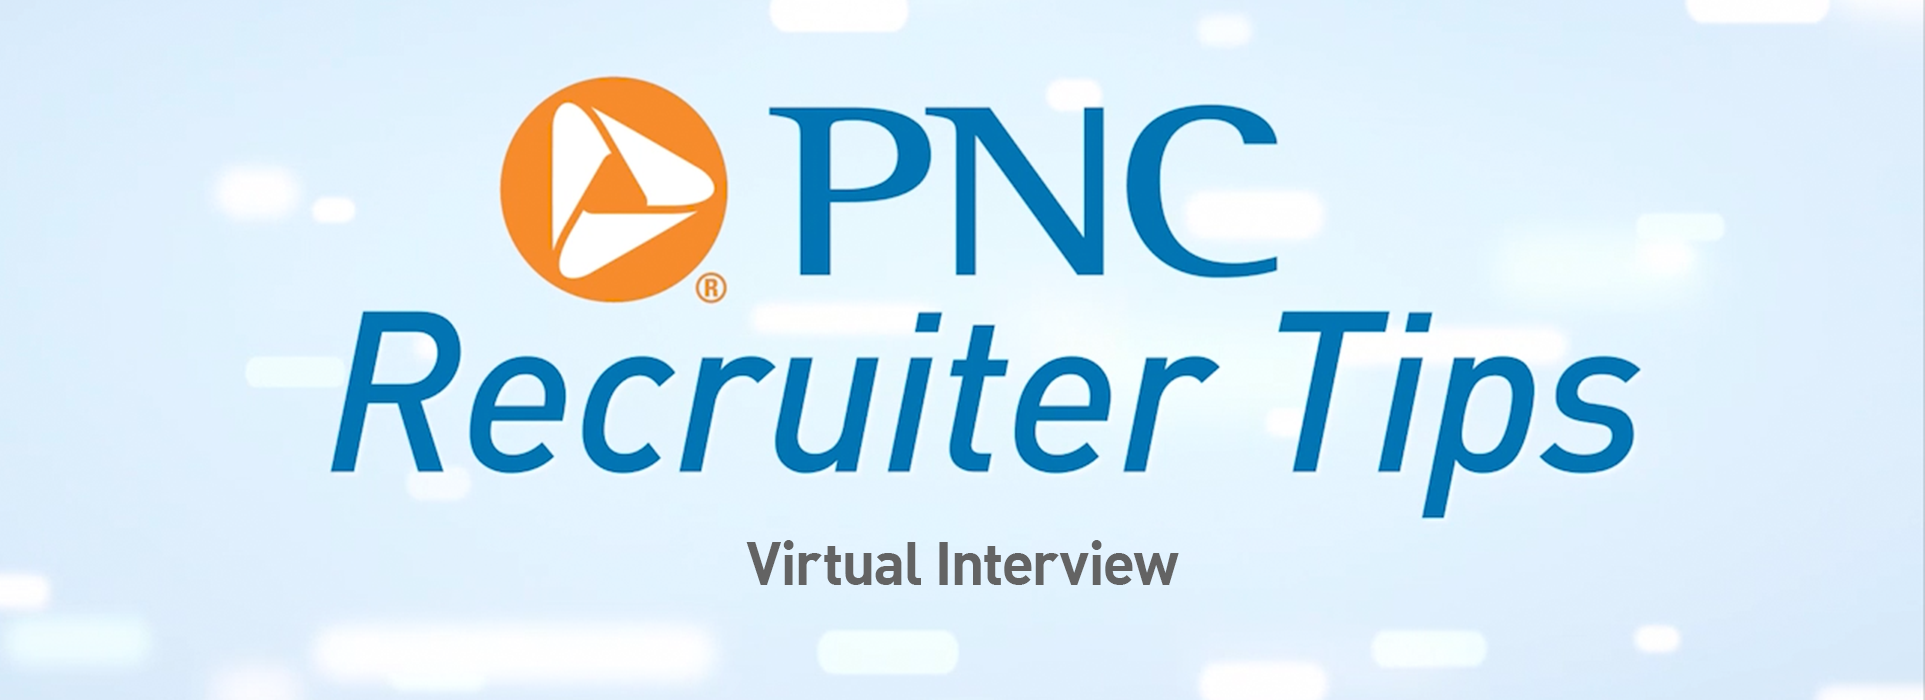 PNC Recruiter Tips: Virtual Interview